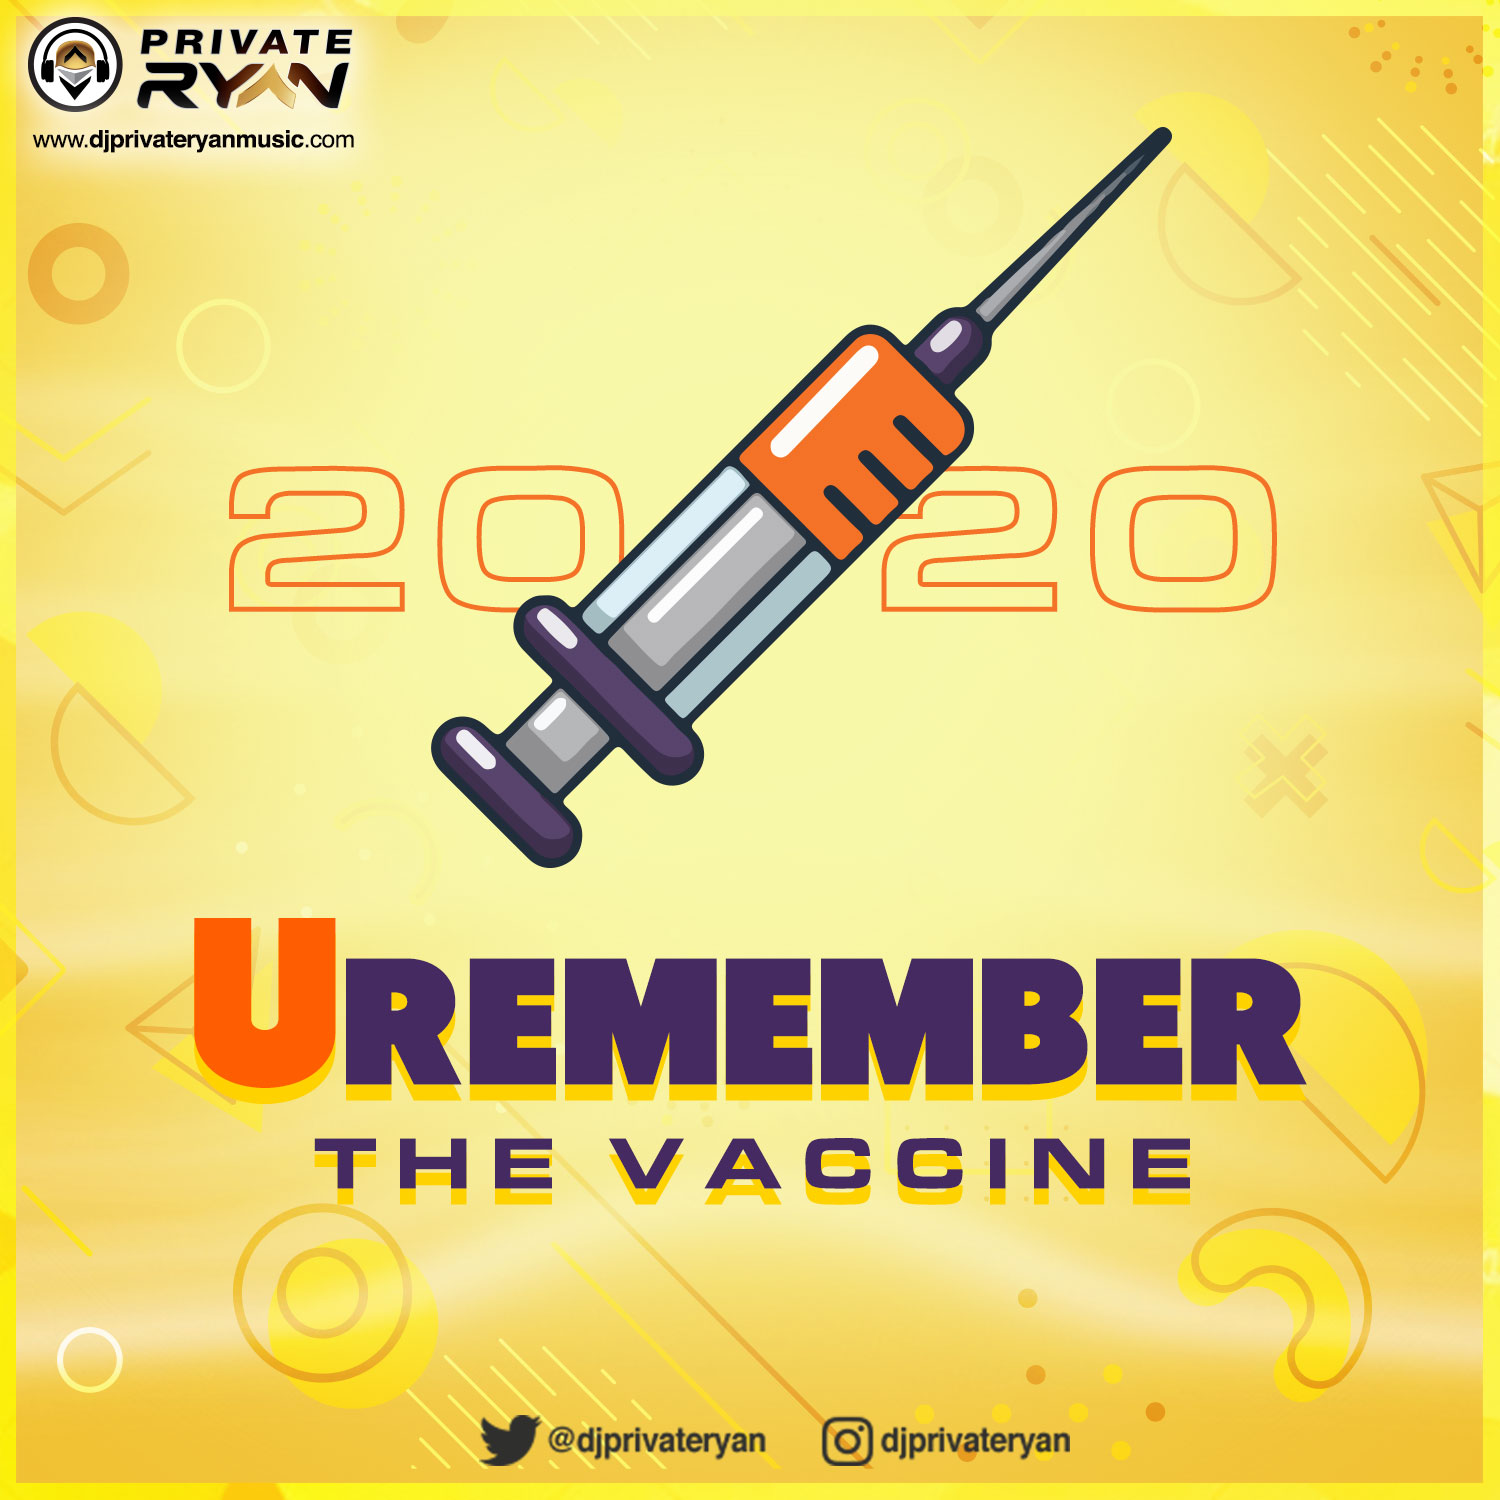 Private Ryan Presents Remember 2020 (Best of 2020 RAW) The Vaccine